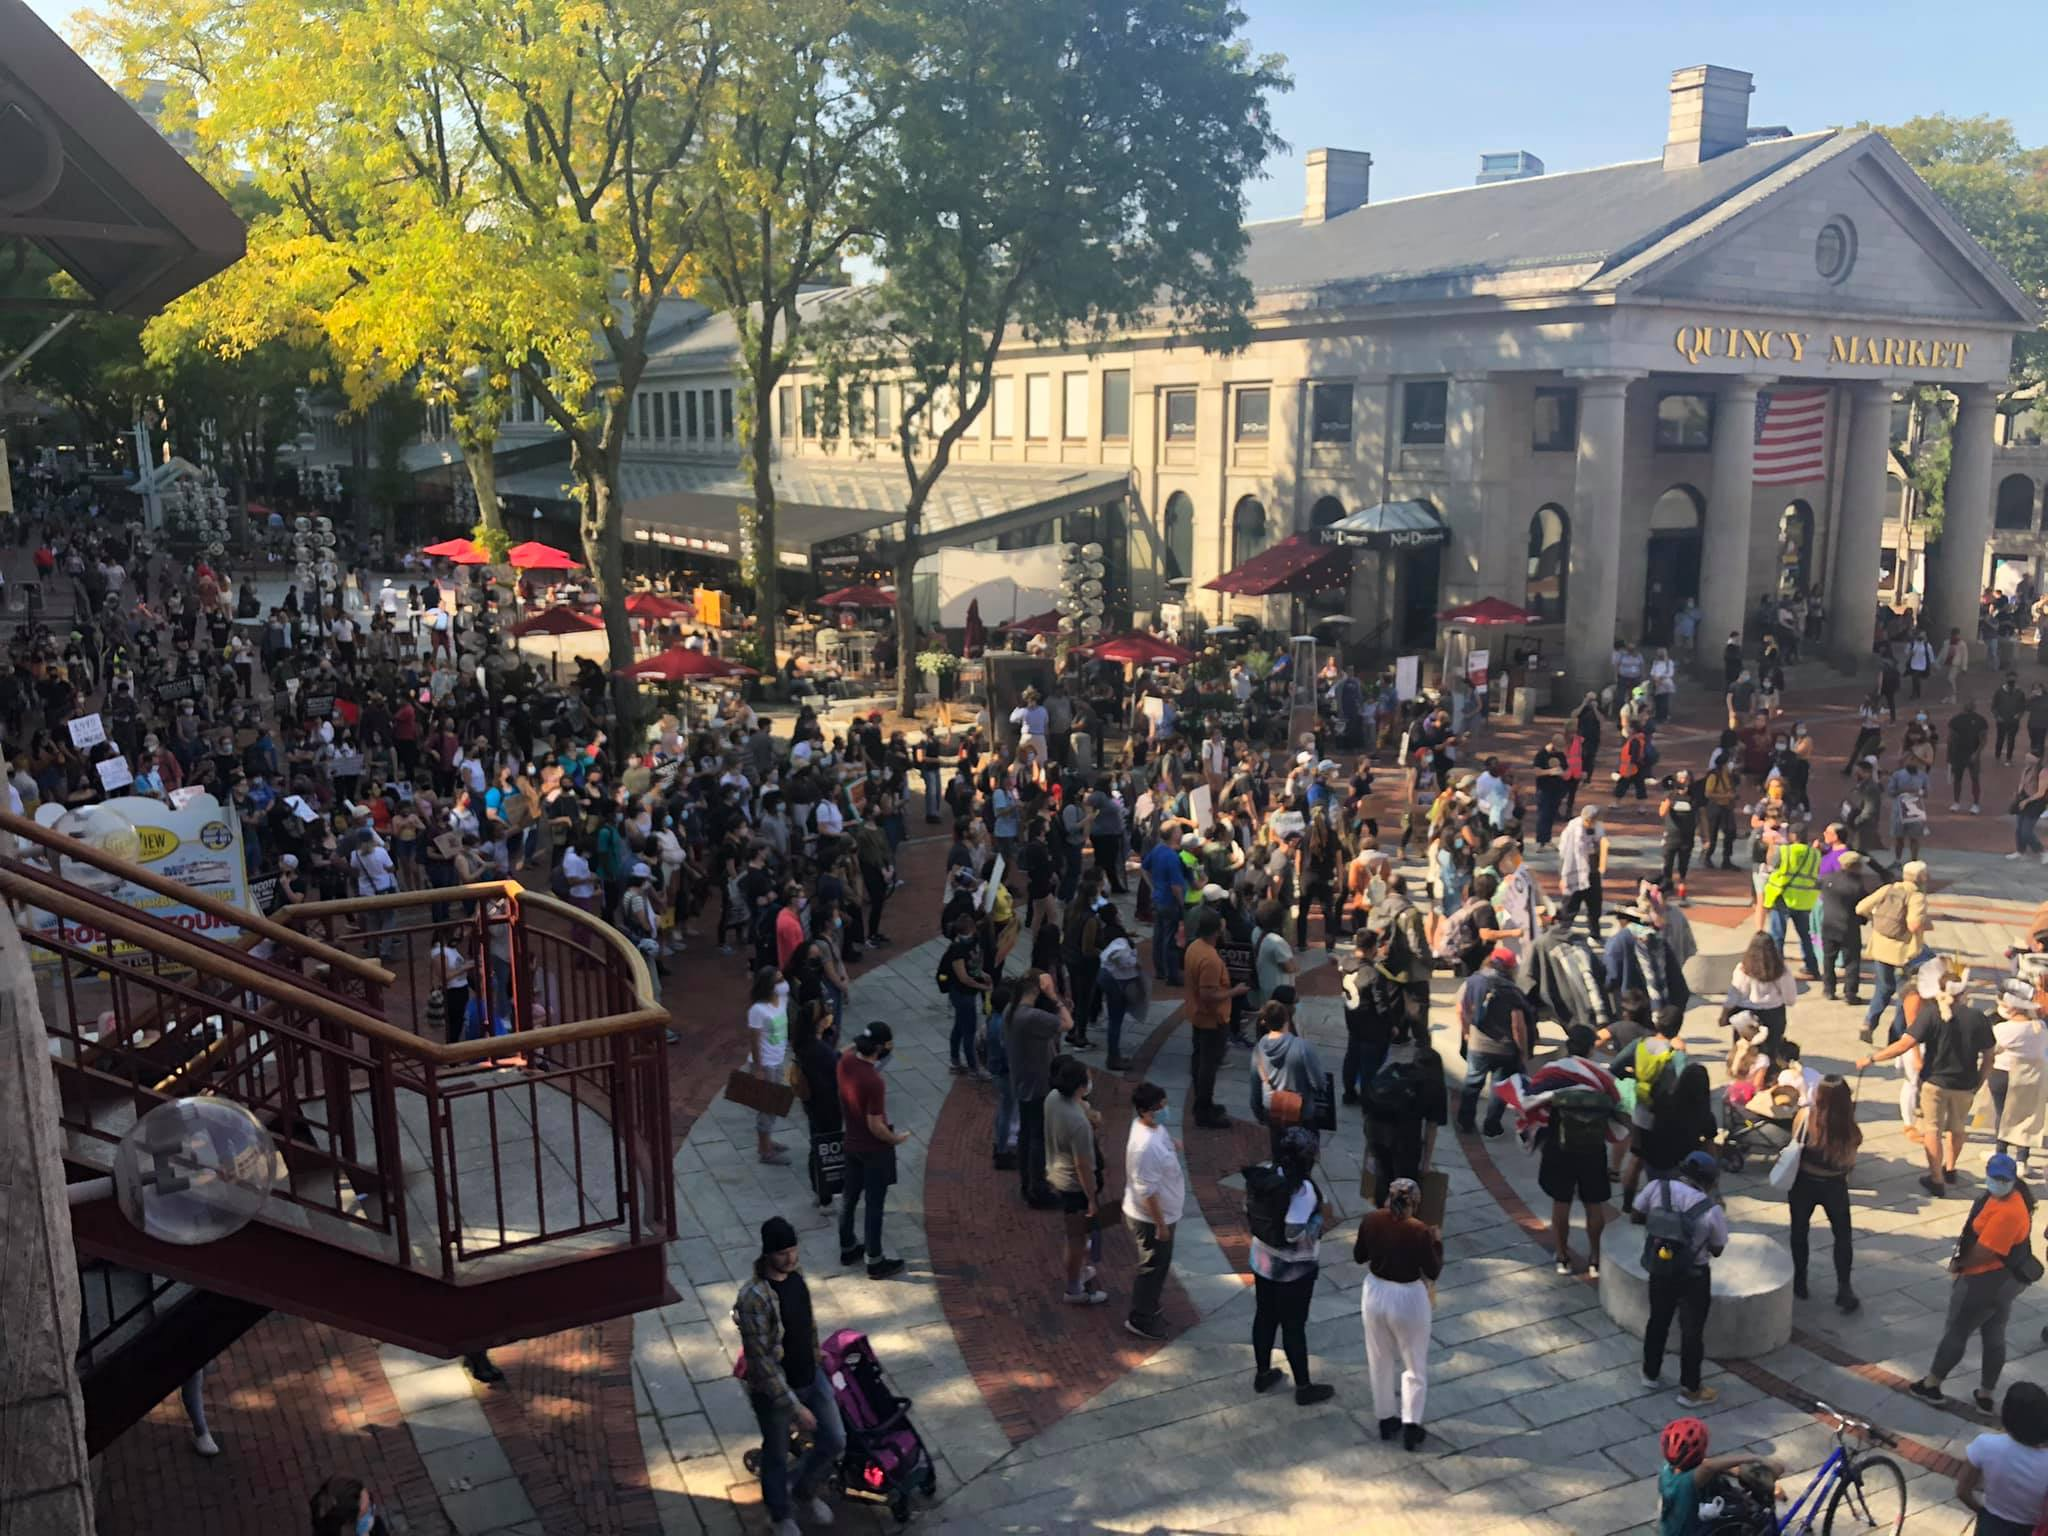 Crowd of several hundred people in Indigenous Peoples Day march gathered outside Faneuil Hall